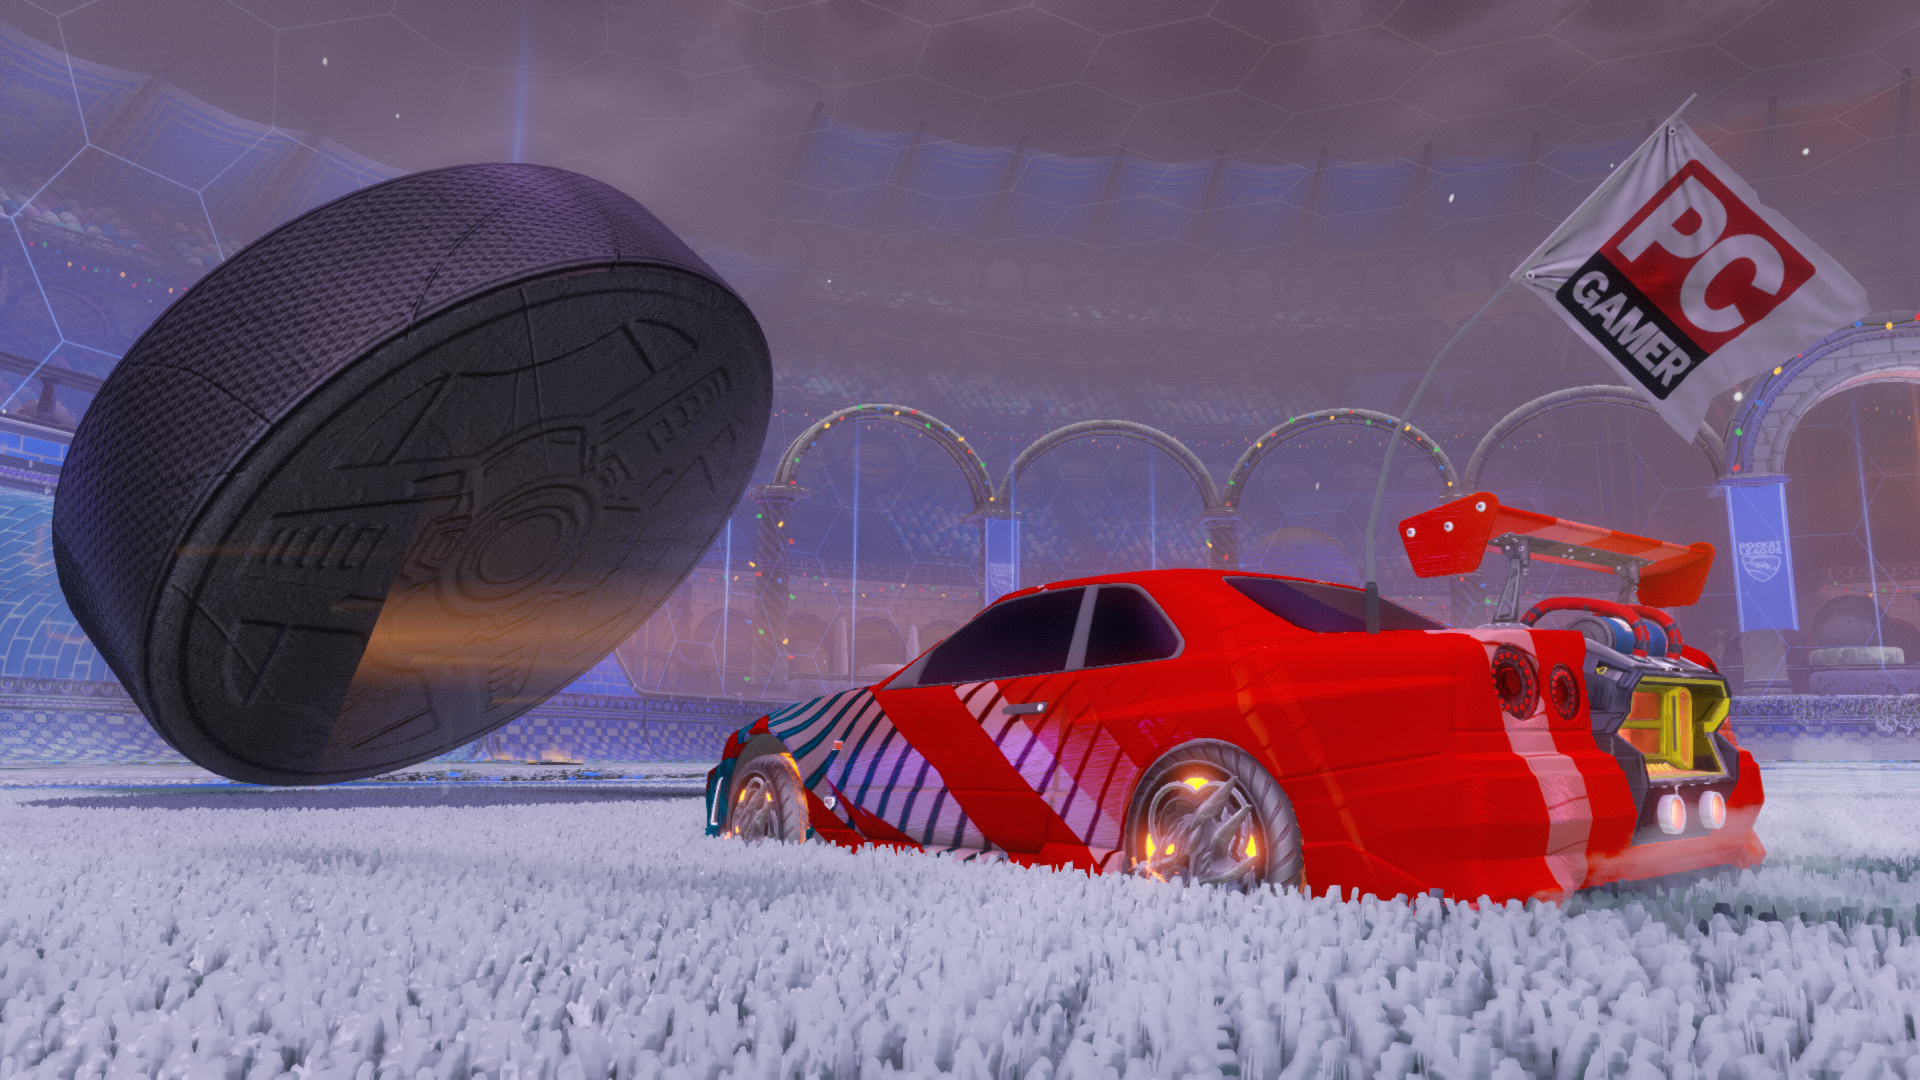 Rocket League may get competitive Snow Day and Hoops | PC Gamer